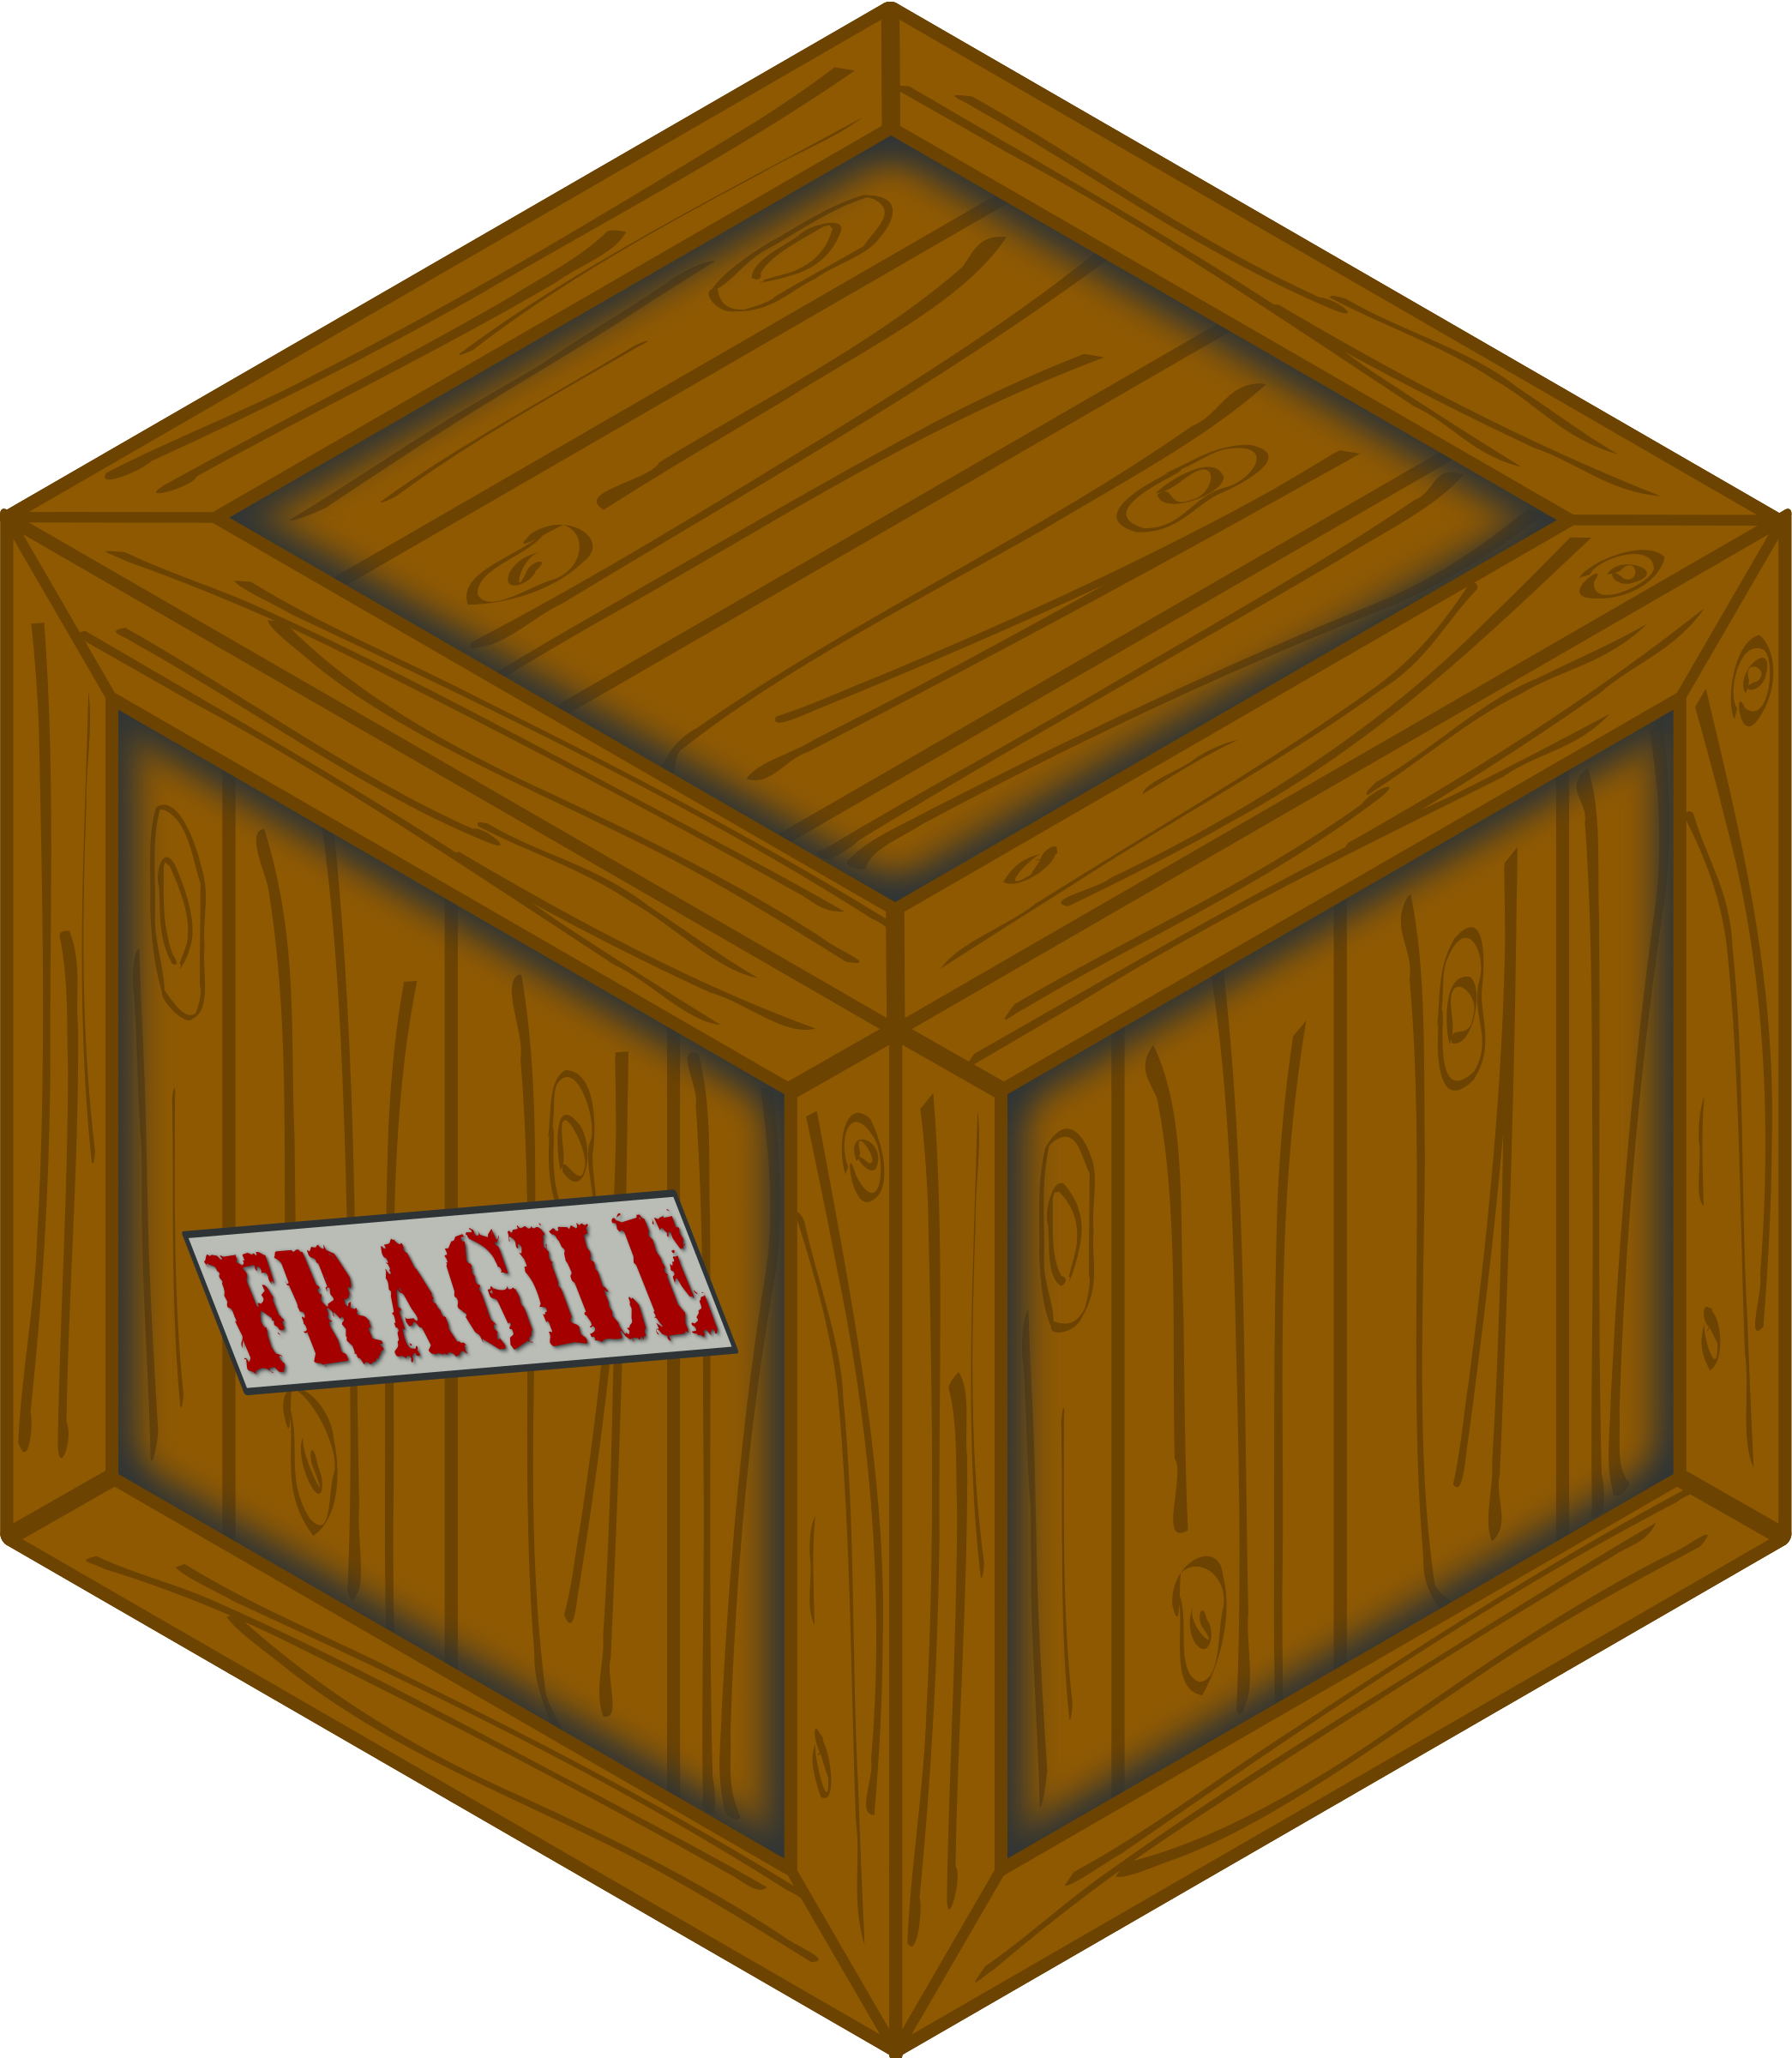 Isometric wooden crate by Erulisseuiin